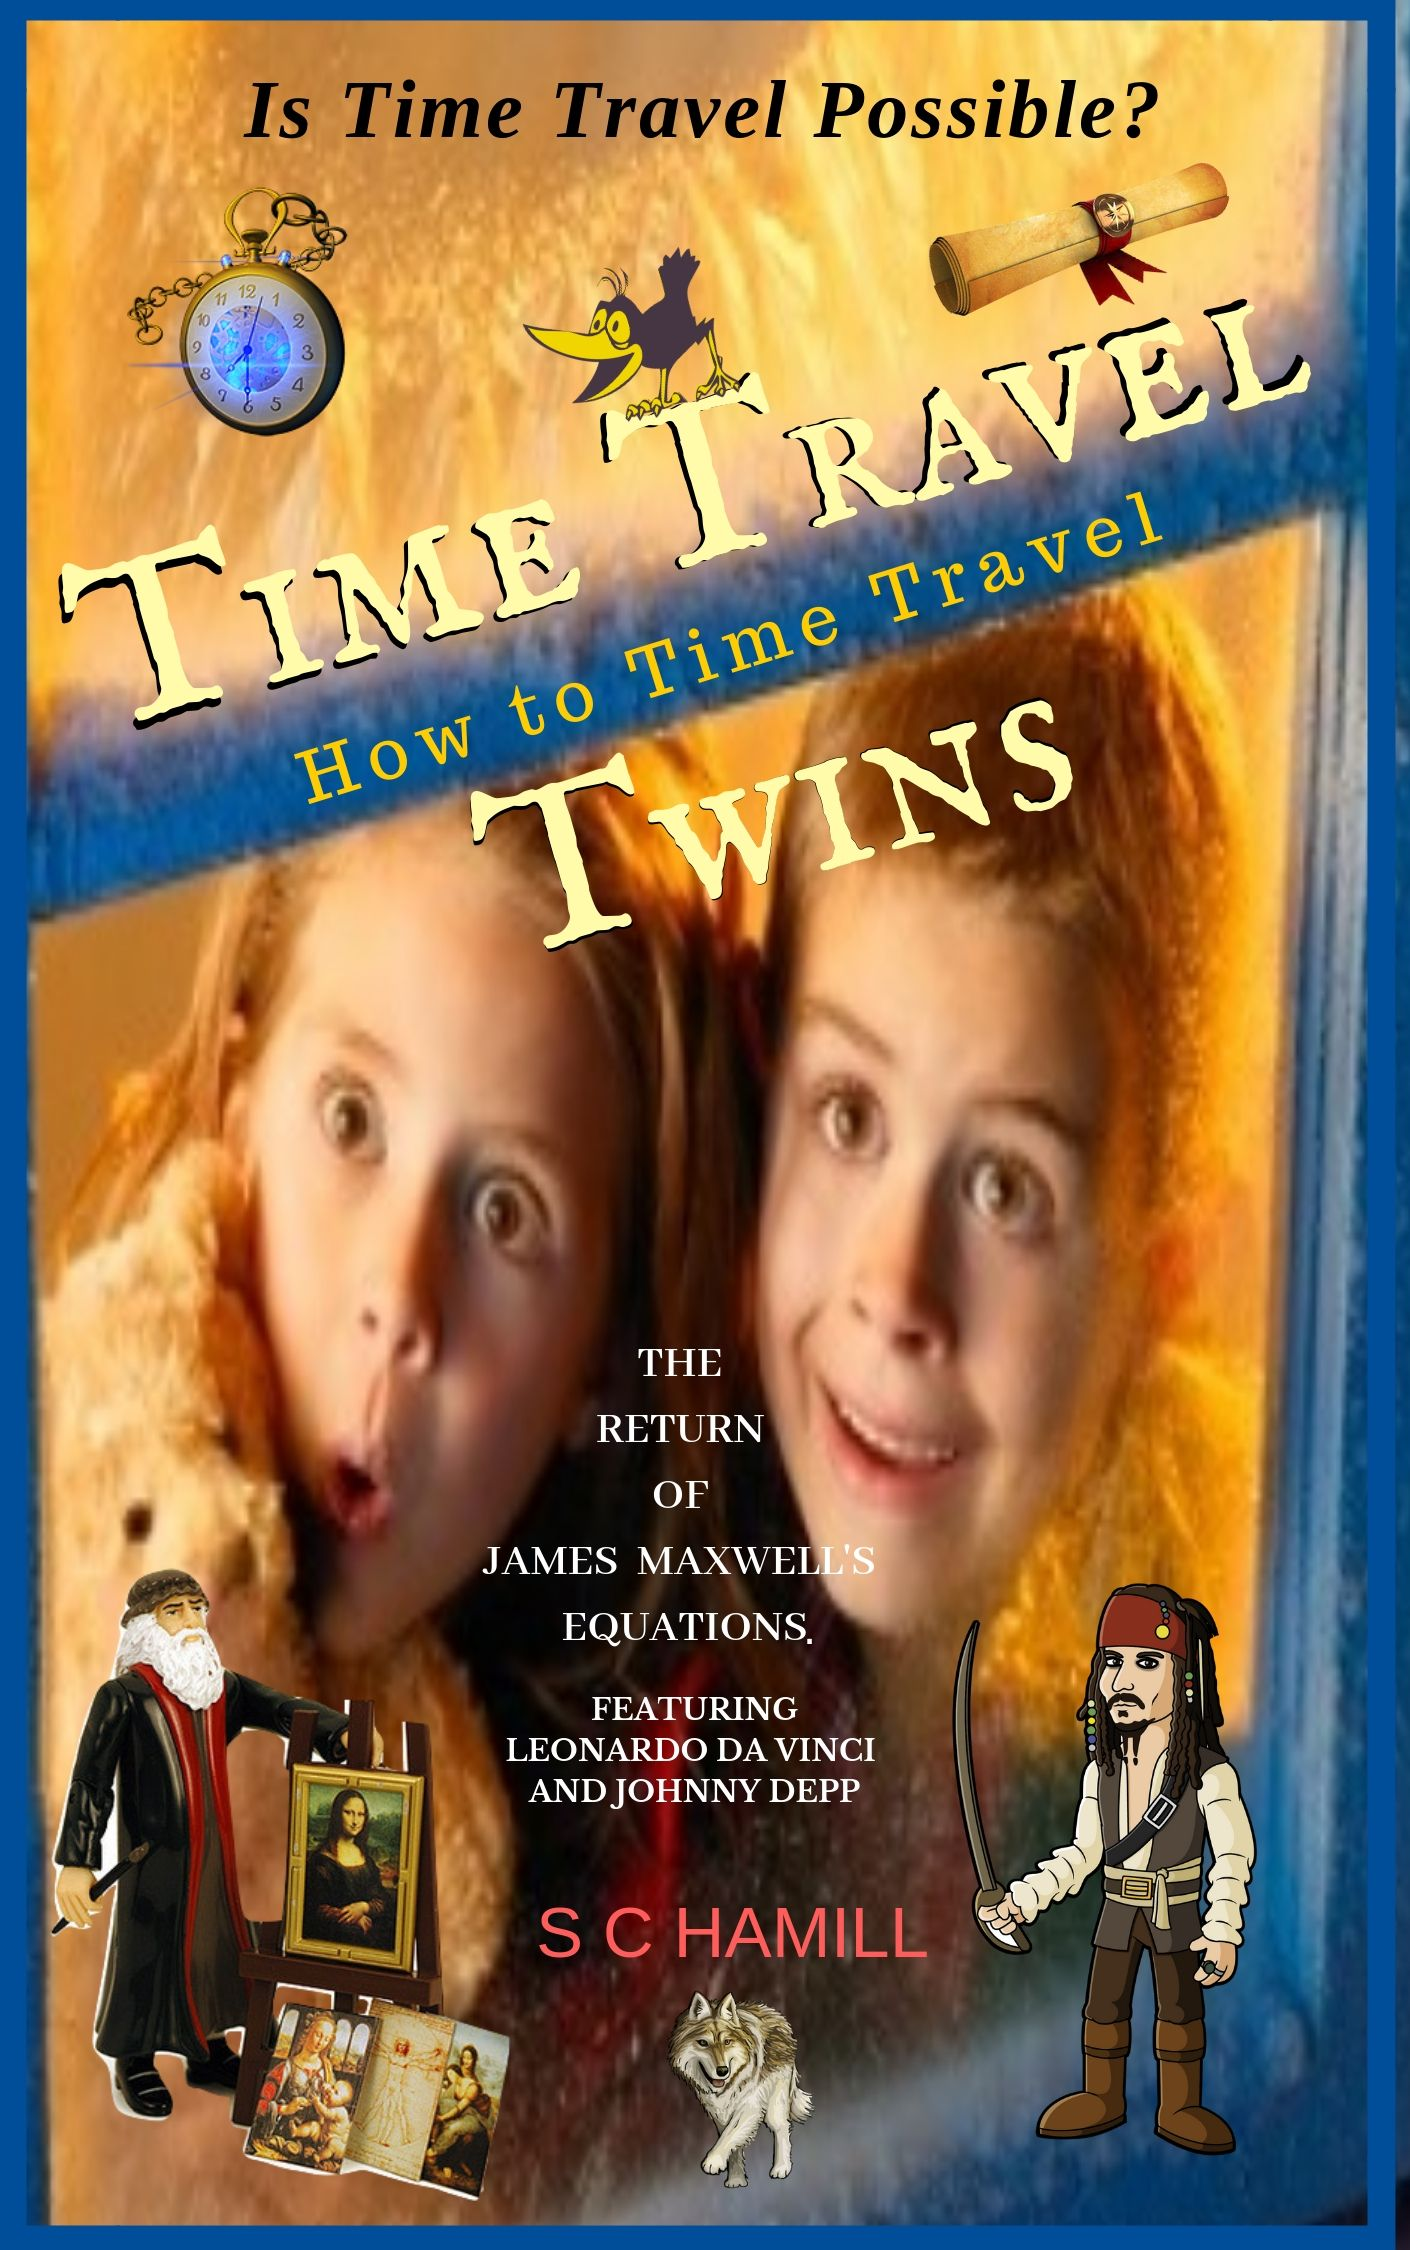 Resultado de imagen para travel through time da vinci